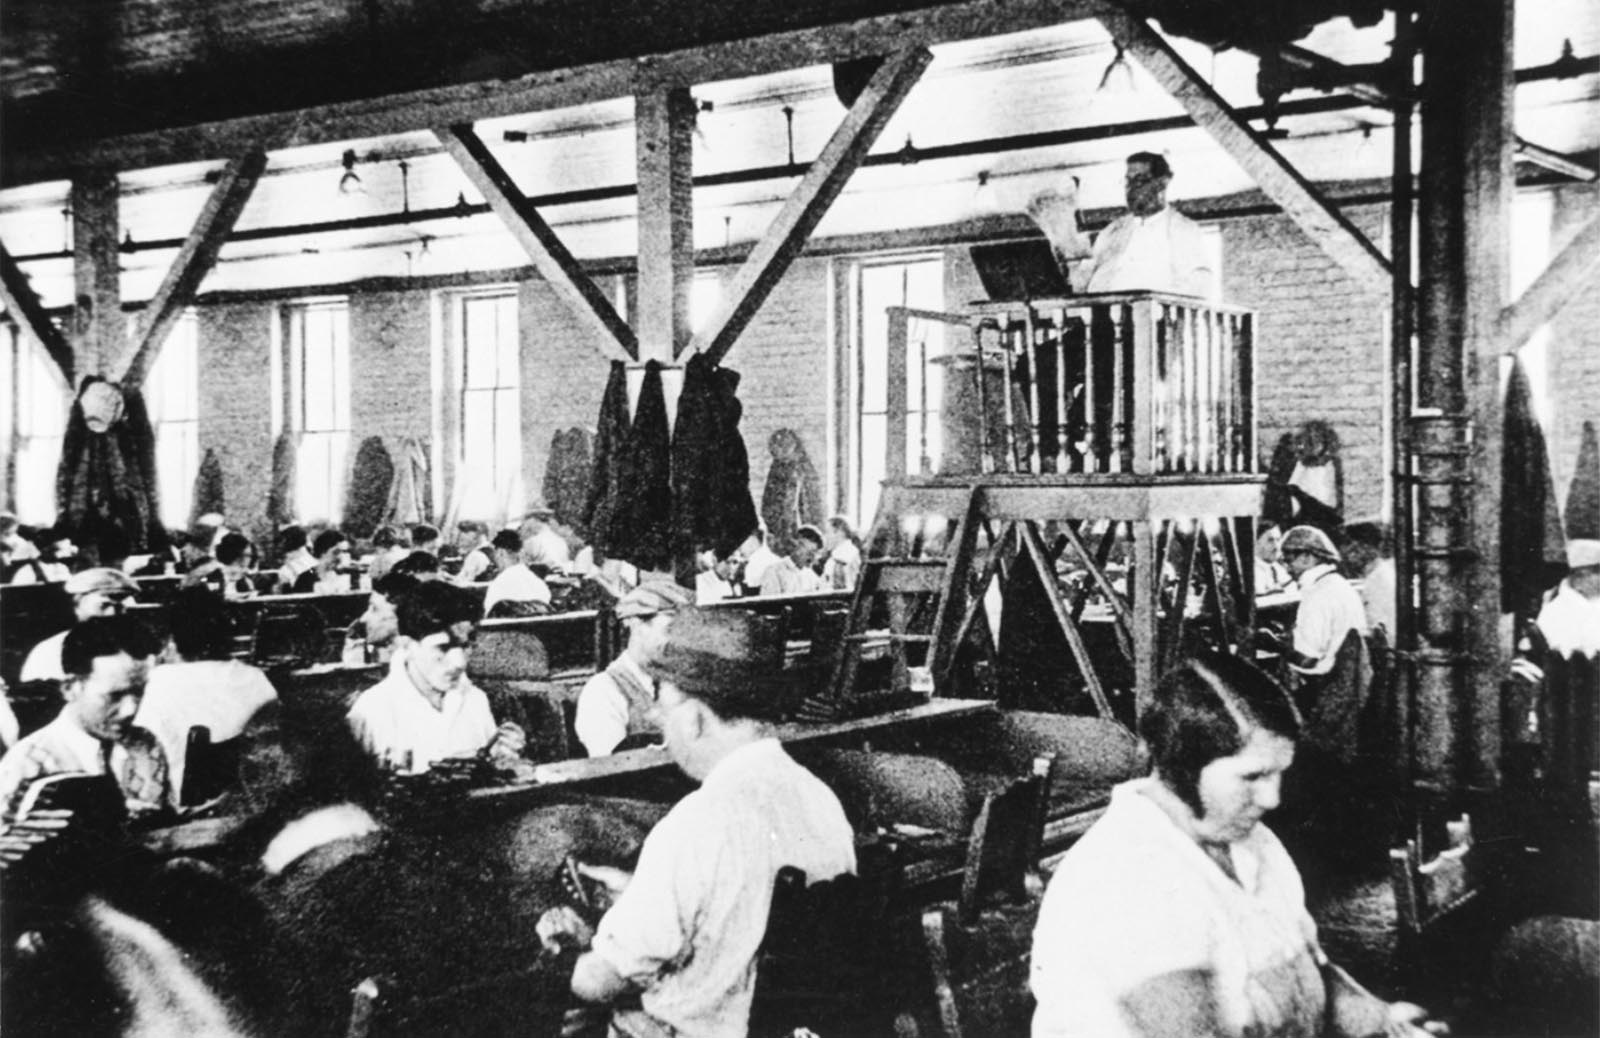 Lector in a Tampa cigar factory, circa 1930.